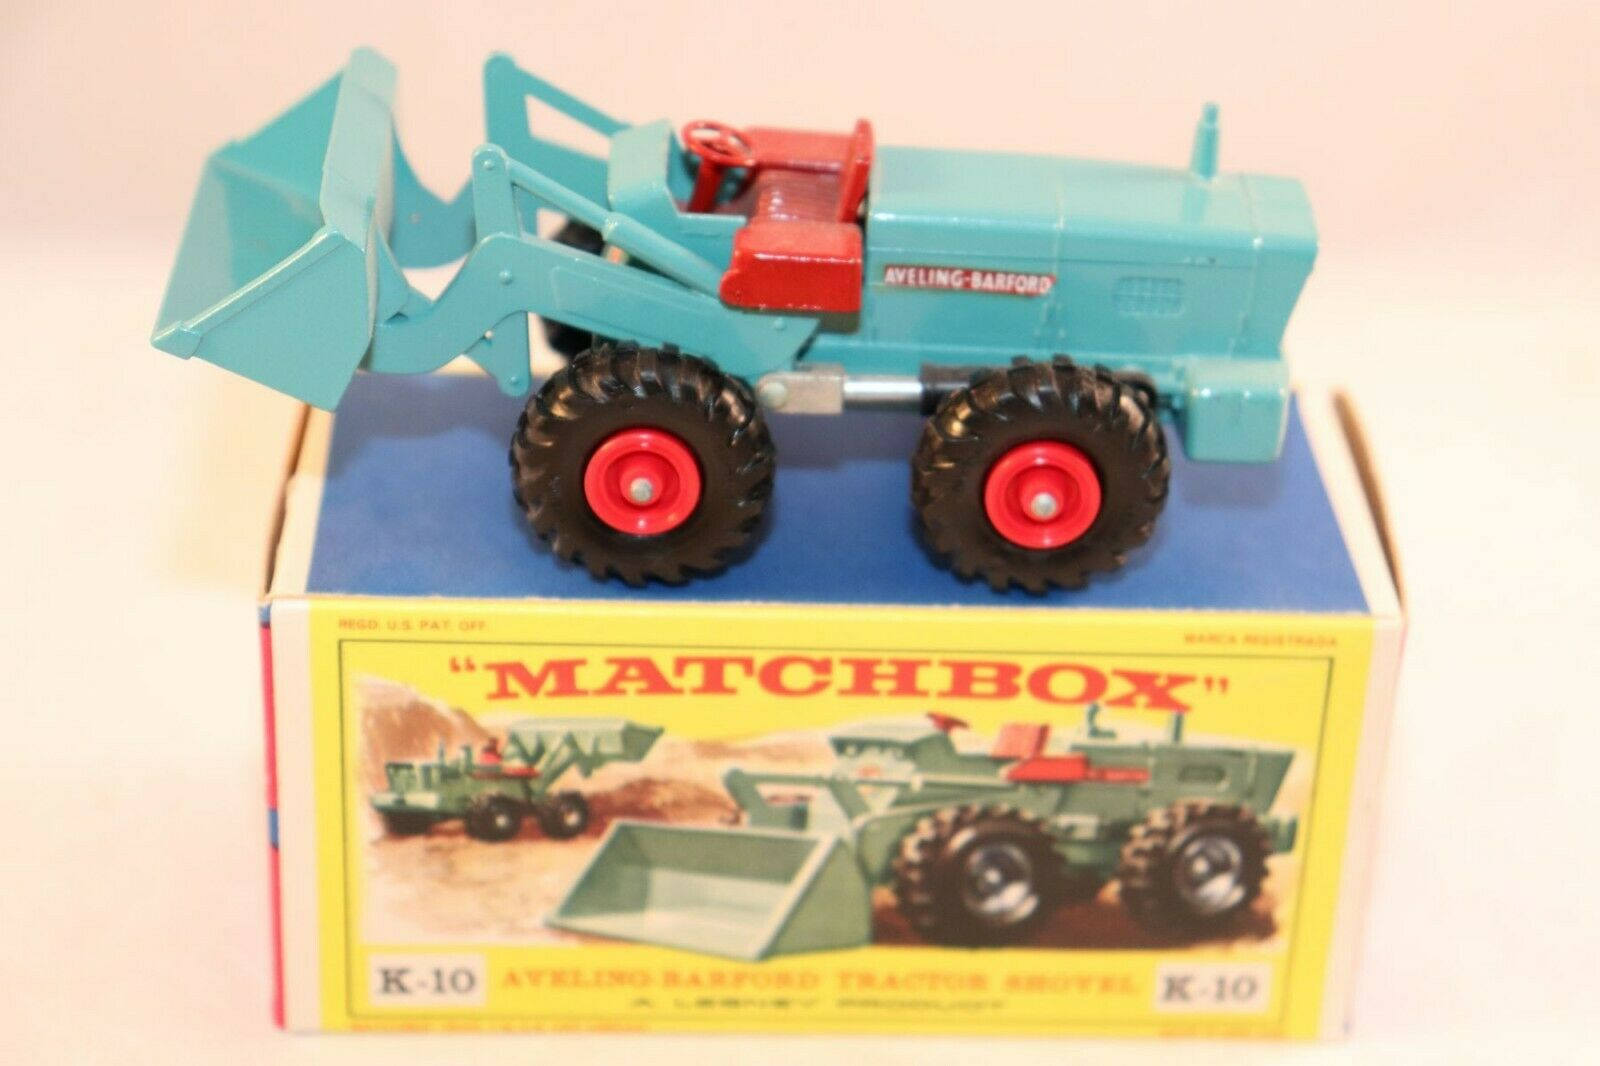 Matchbox Lesney K-10 Aveling Barford Tractor Shovel very very near mint in box